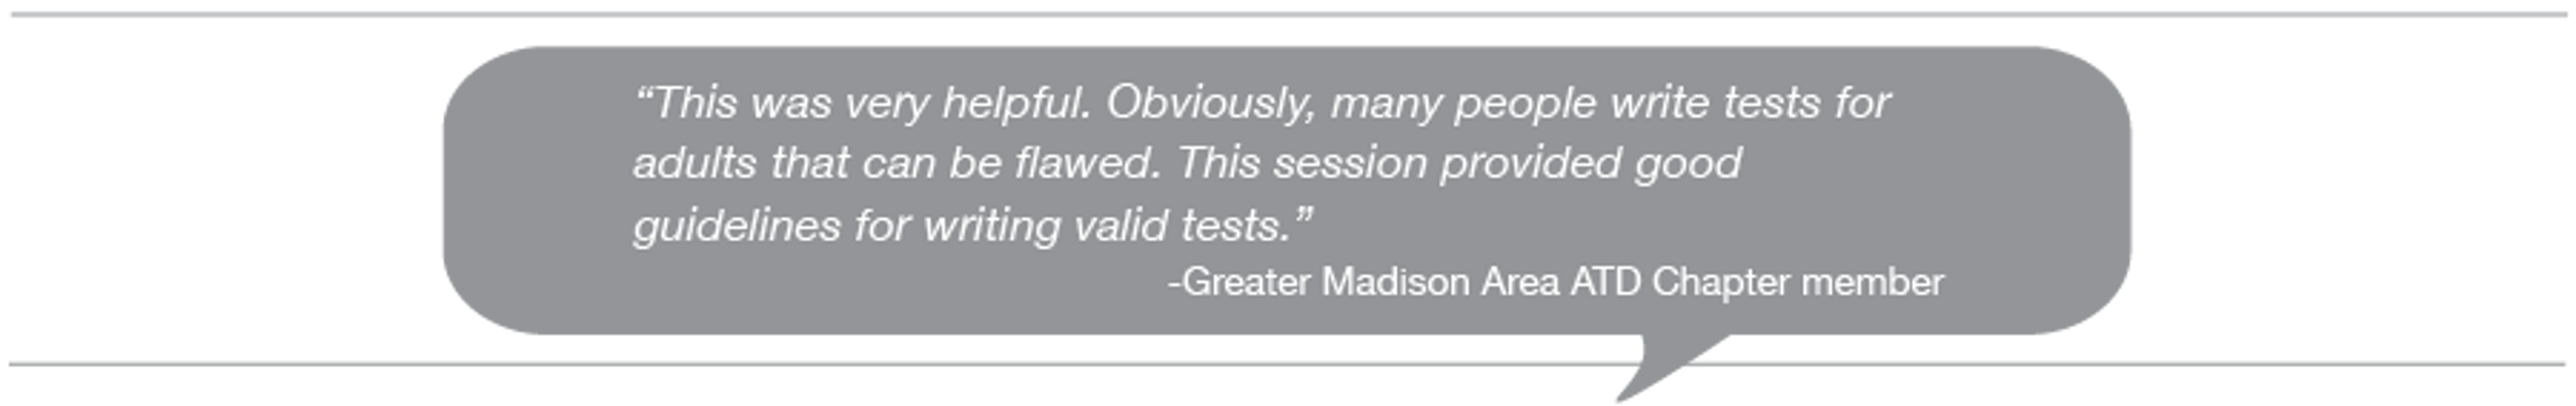 Testimonial:  This was very helpful. This session provided good guidelines for writing valid tests